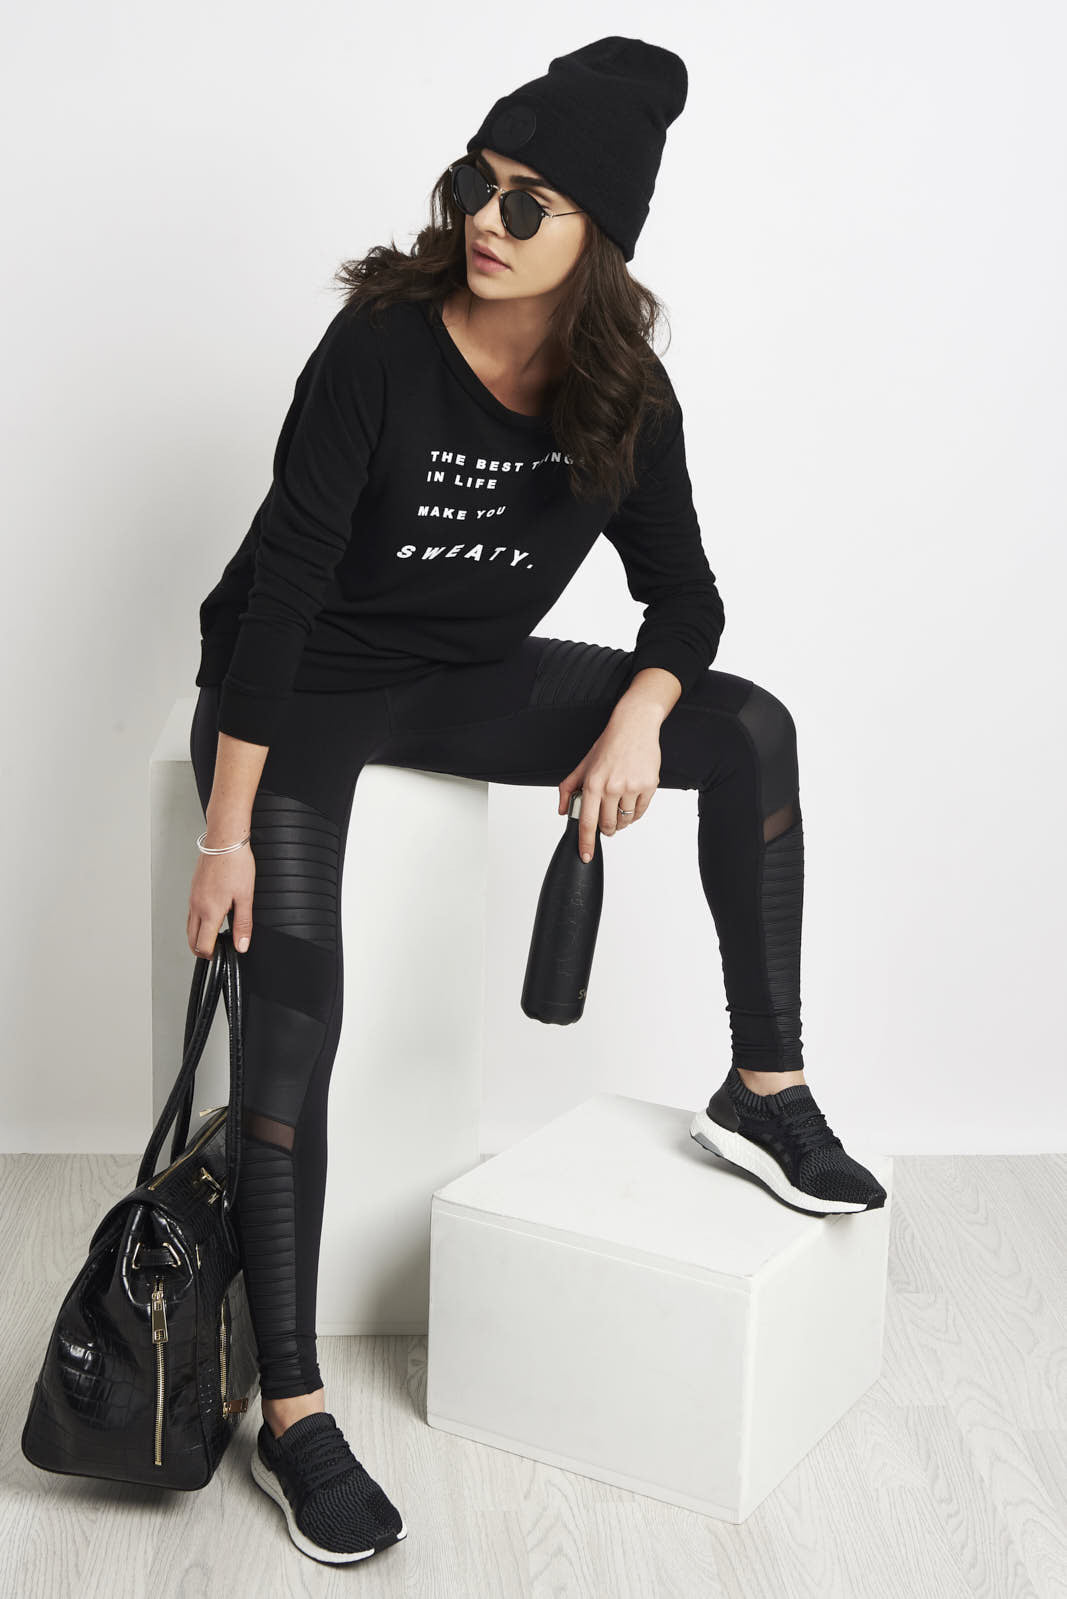 good hYOUman Jordie best things in life pullover image 4 - The Sports Edit